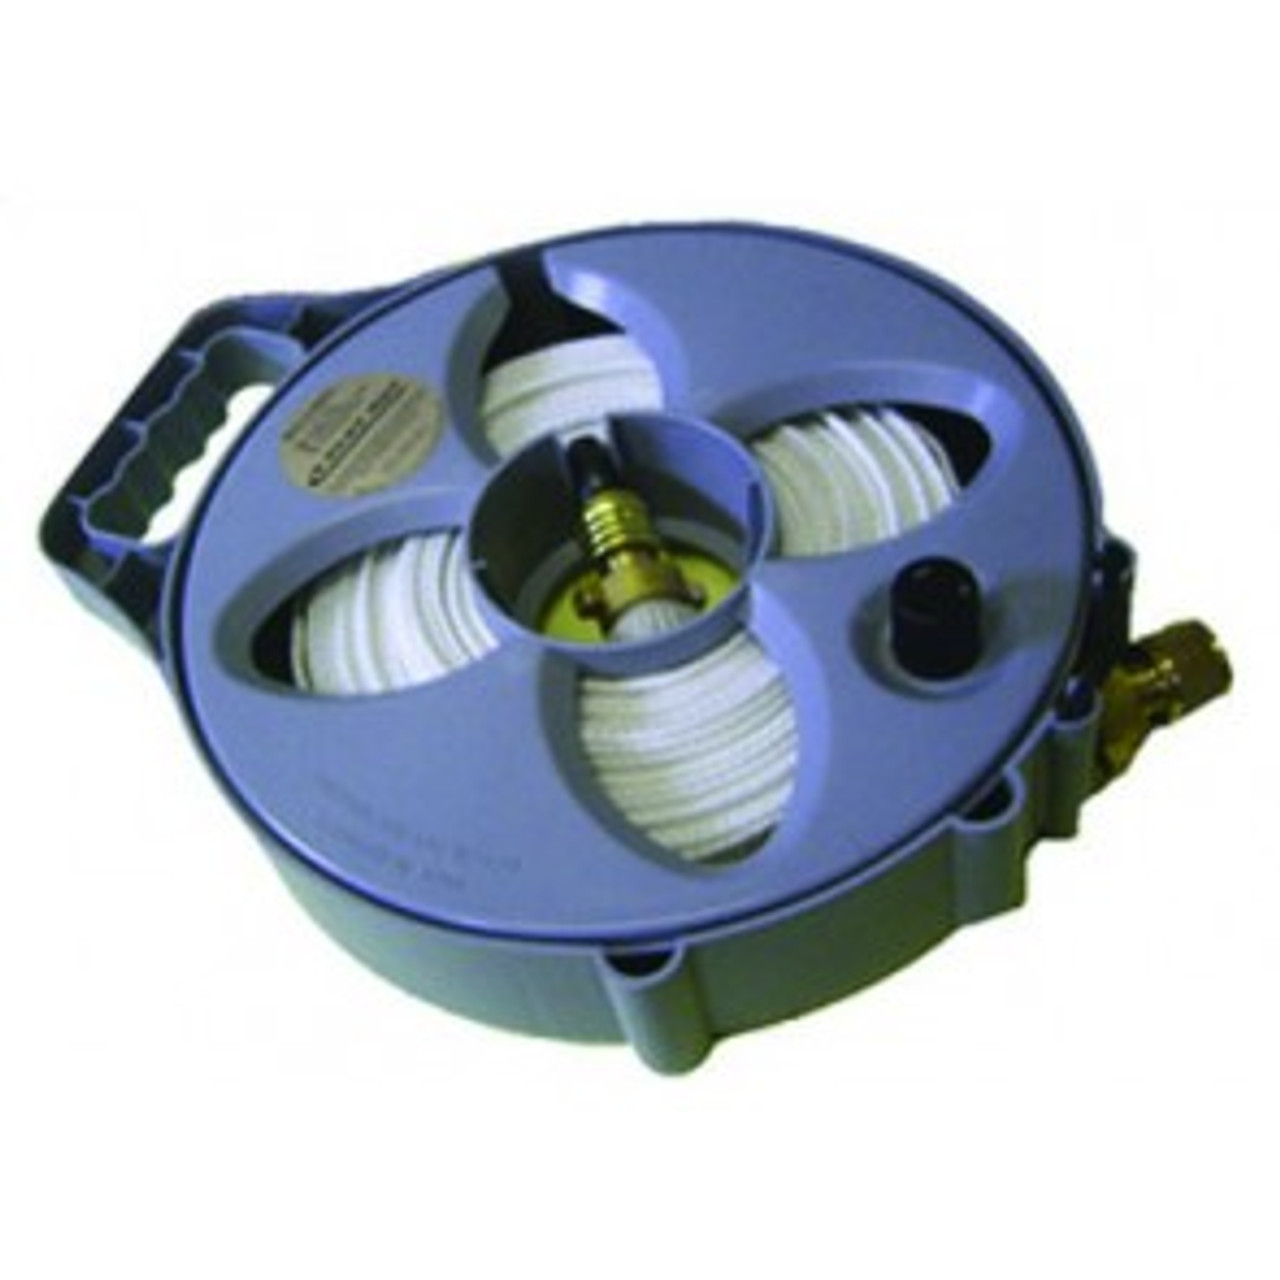 Hose Flat Drinkwater 10 Metre Complete With Compact Reel | 5309 | Caravan Parts